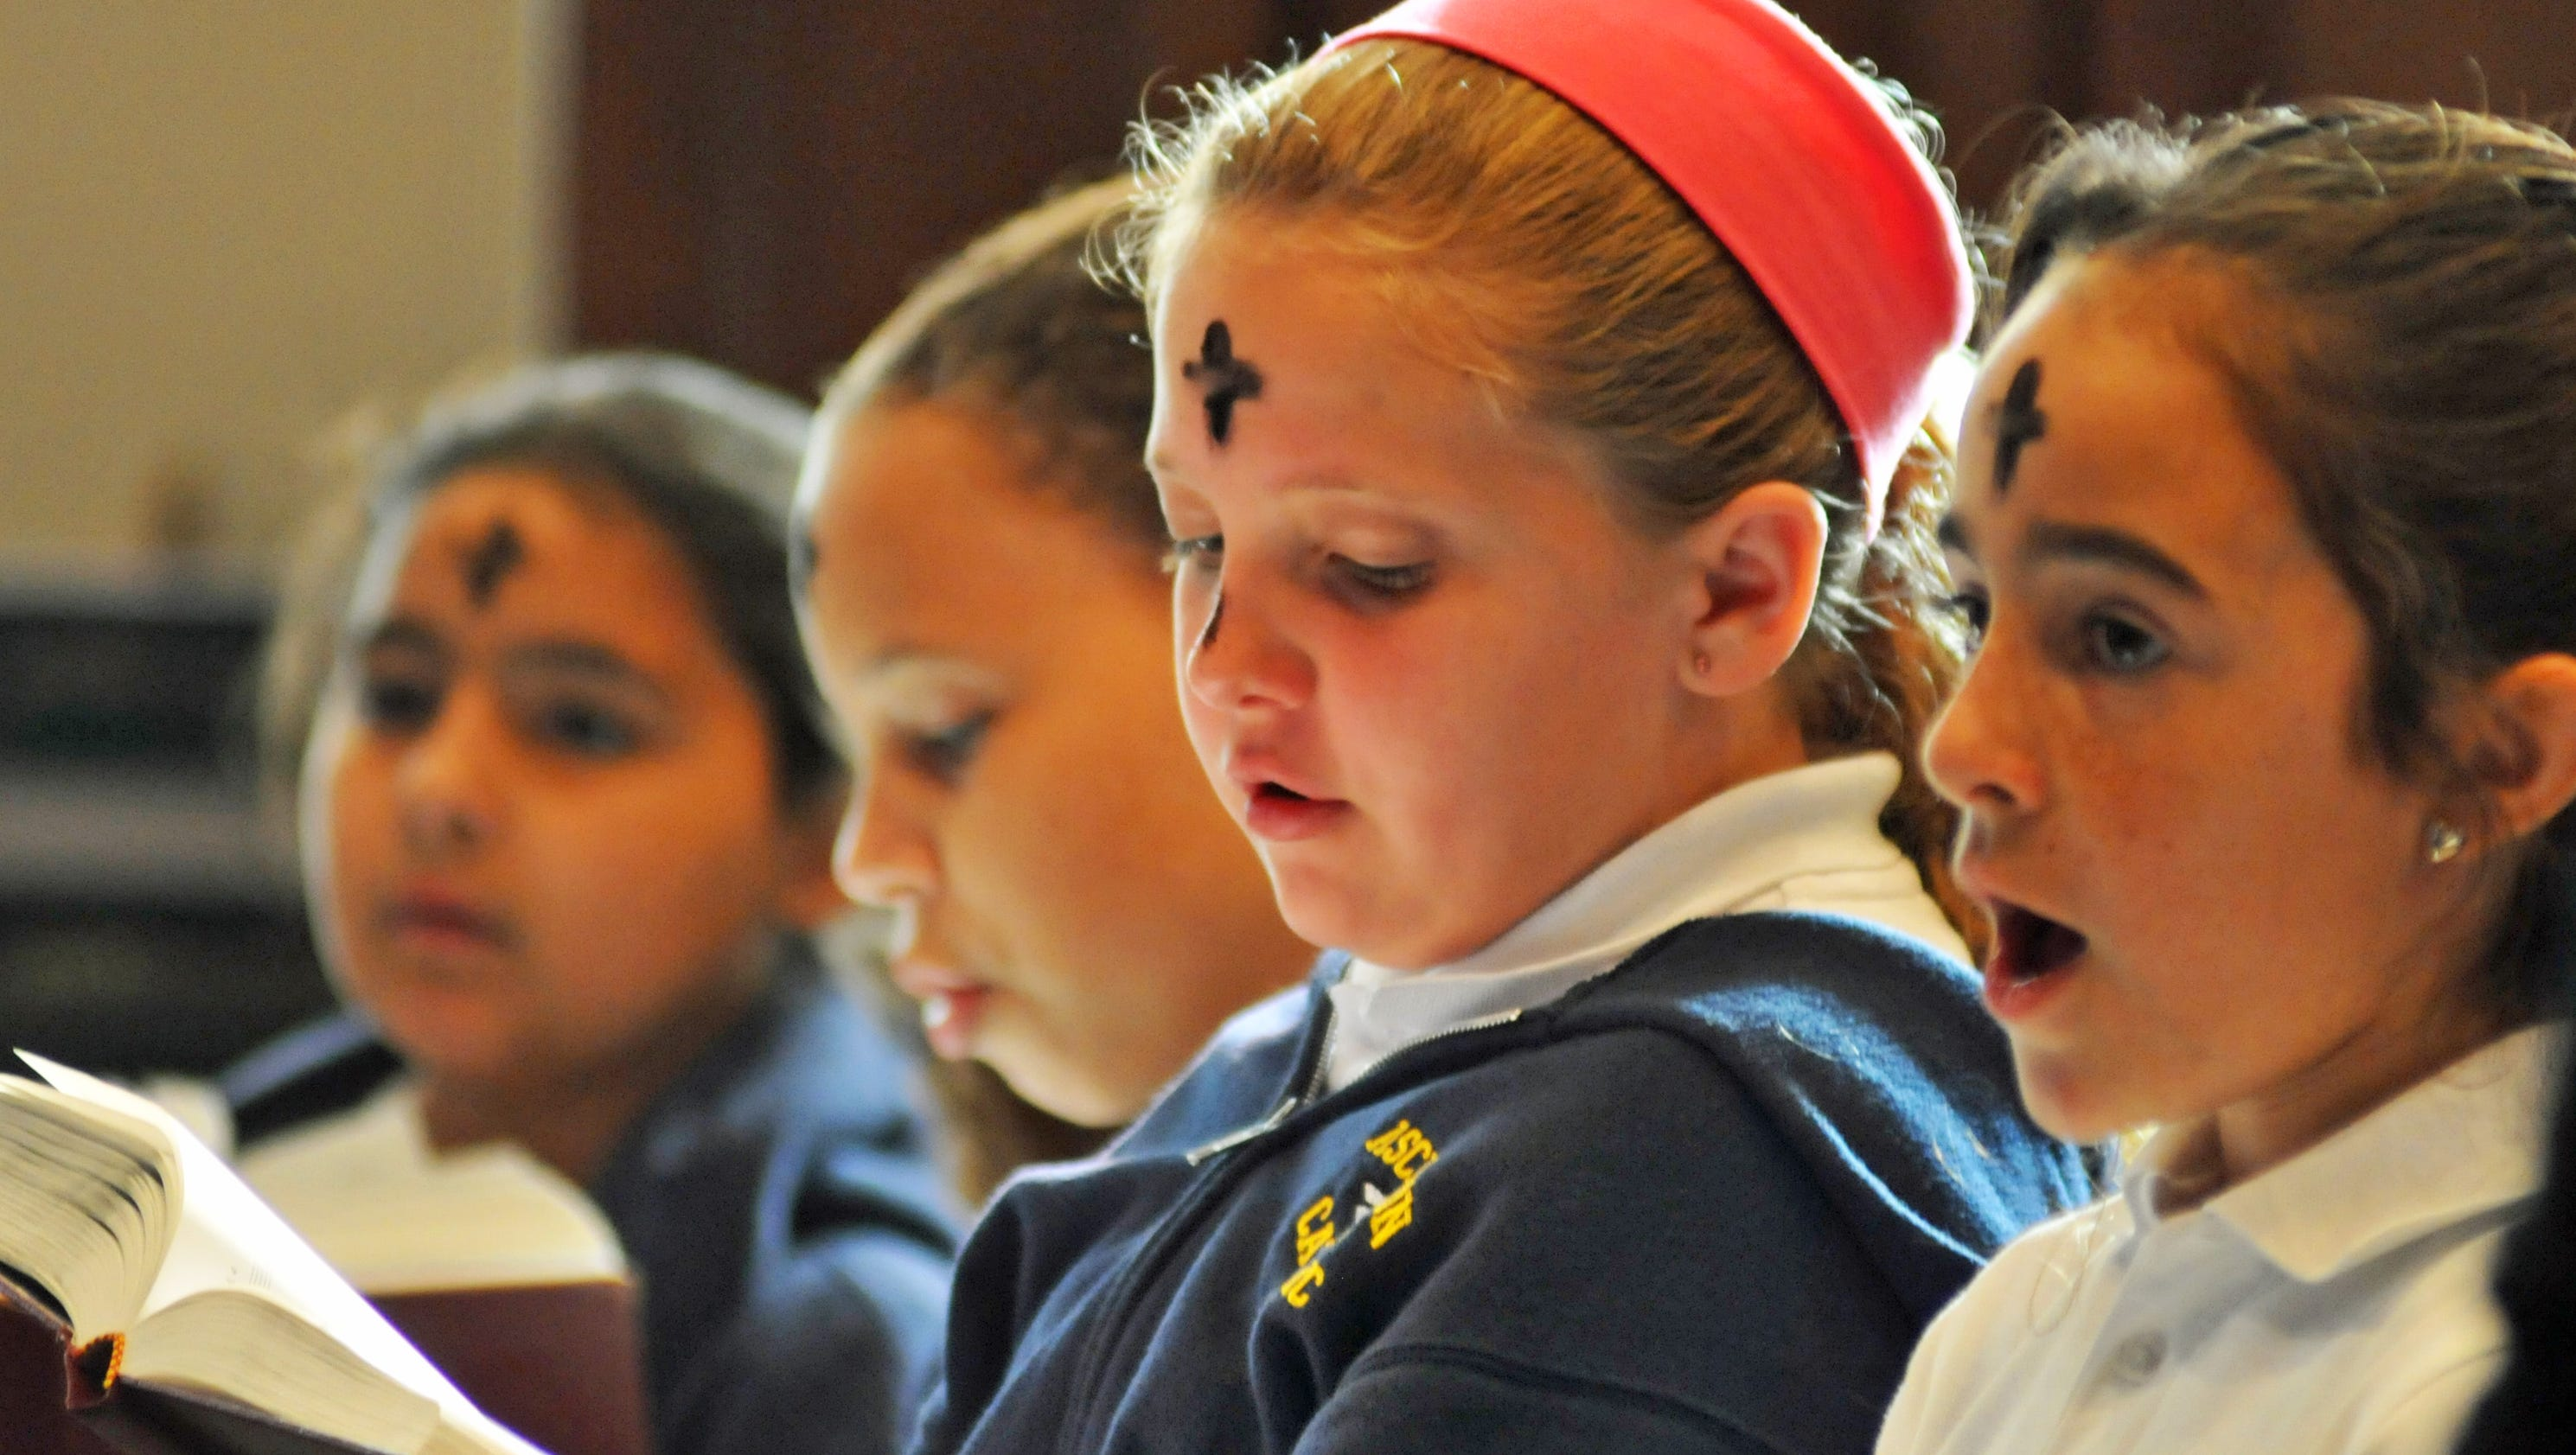 ash single catholic girls Affording catholic education we understand the sacrifices families make in order to send their child(ren) to a school that models their values, and instills faith in their everyday life.